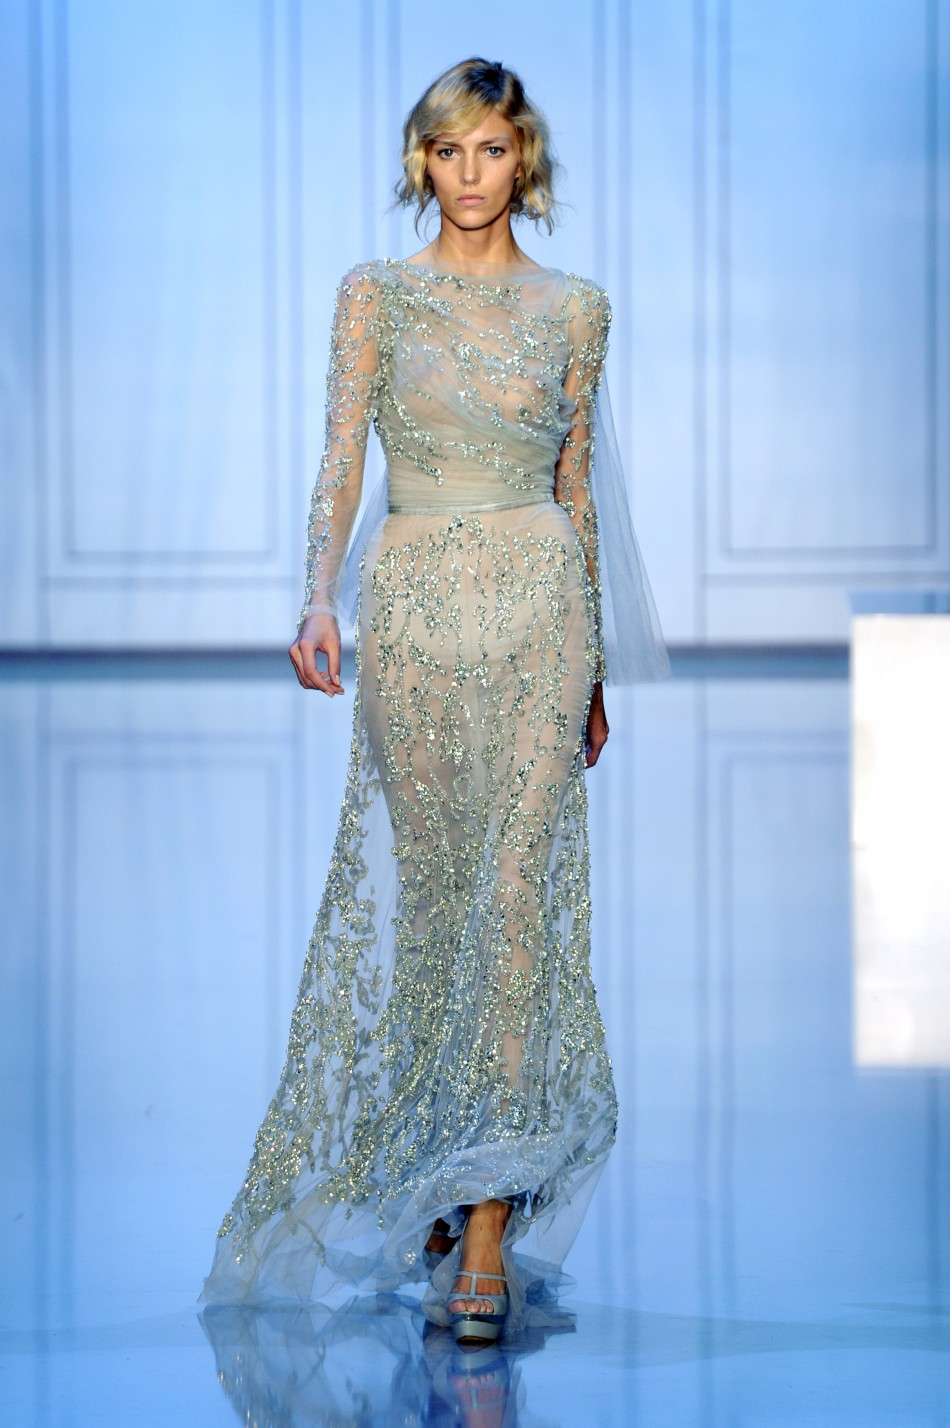 Paris fashion week 39 s haute couture 2011 day 3 hottest photos for List of haute couture designers